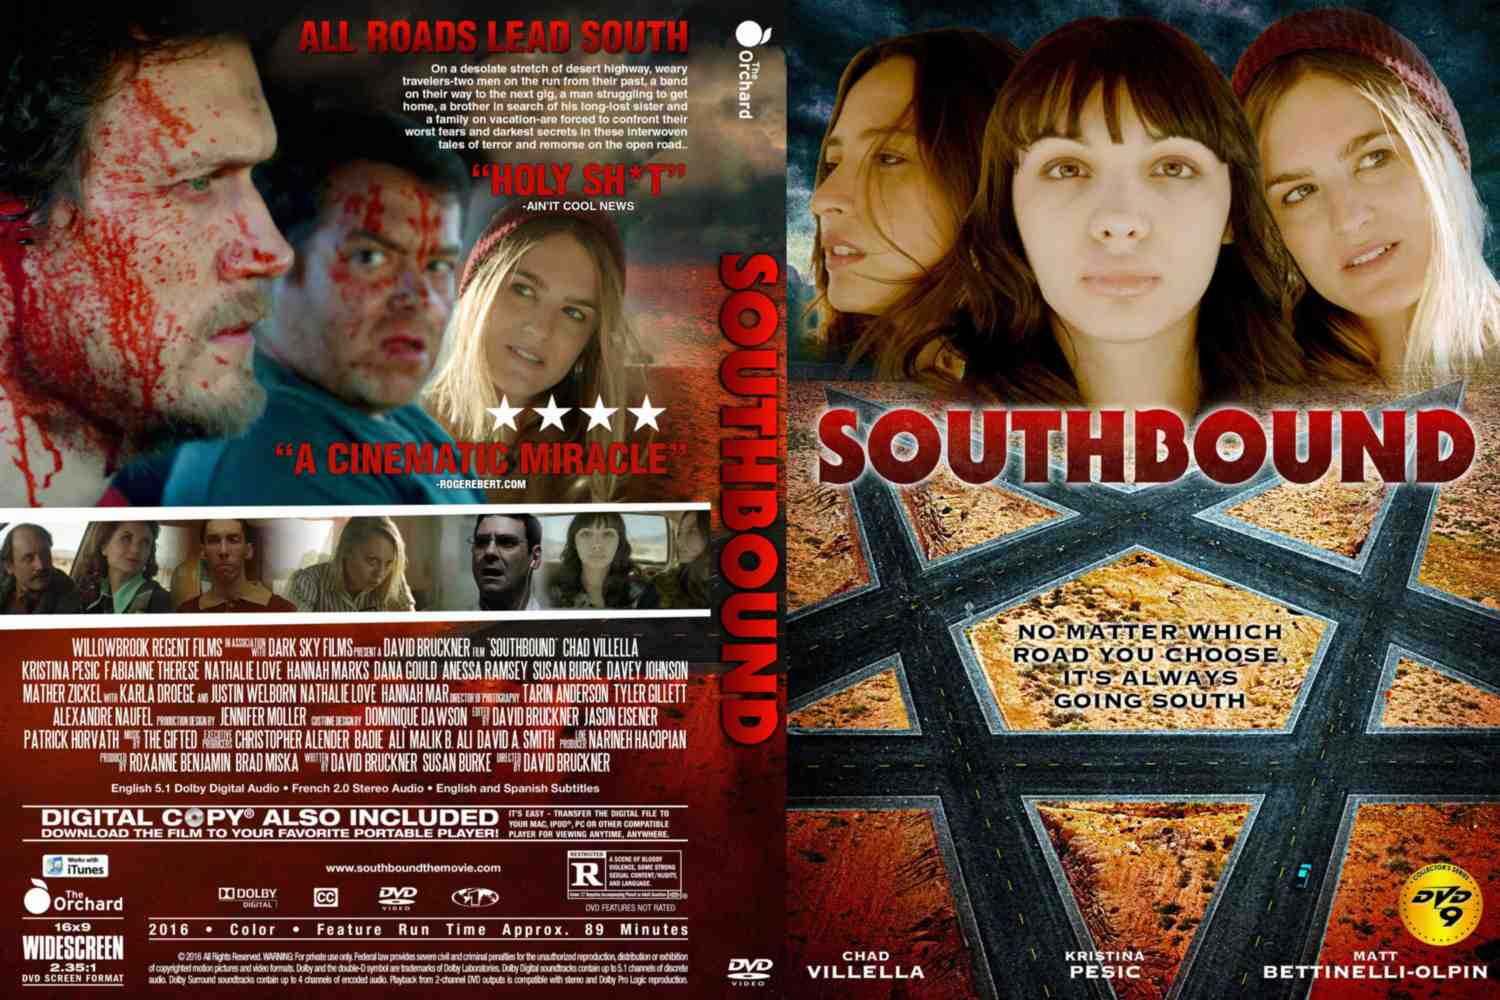 Download Southbound Download Southbound BDRip Dual Áudio Southbound 2016 XANDAODOWNLOAD